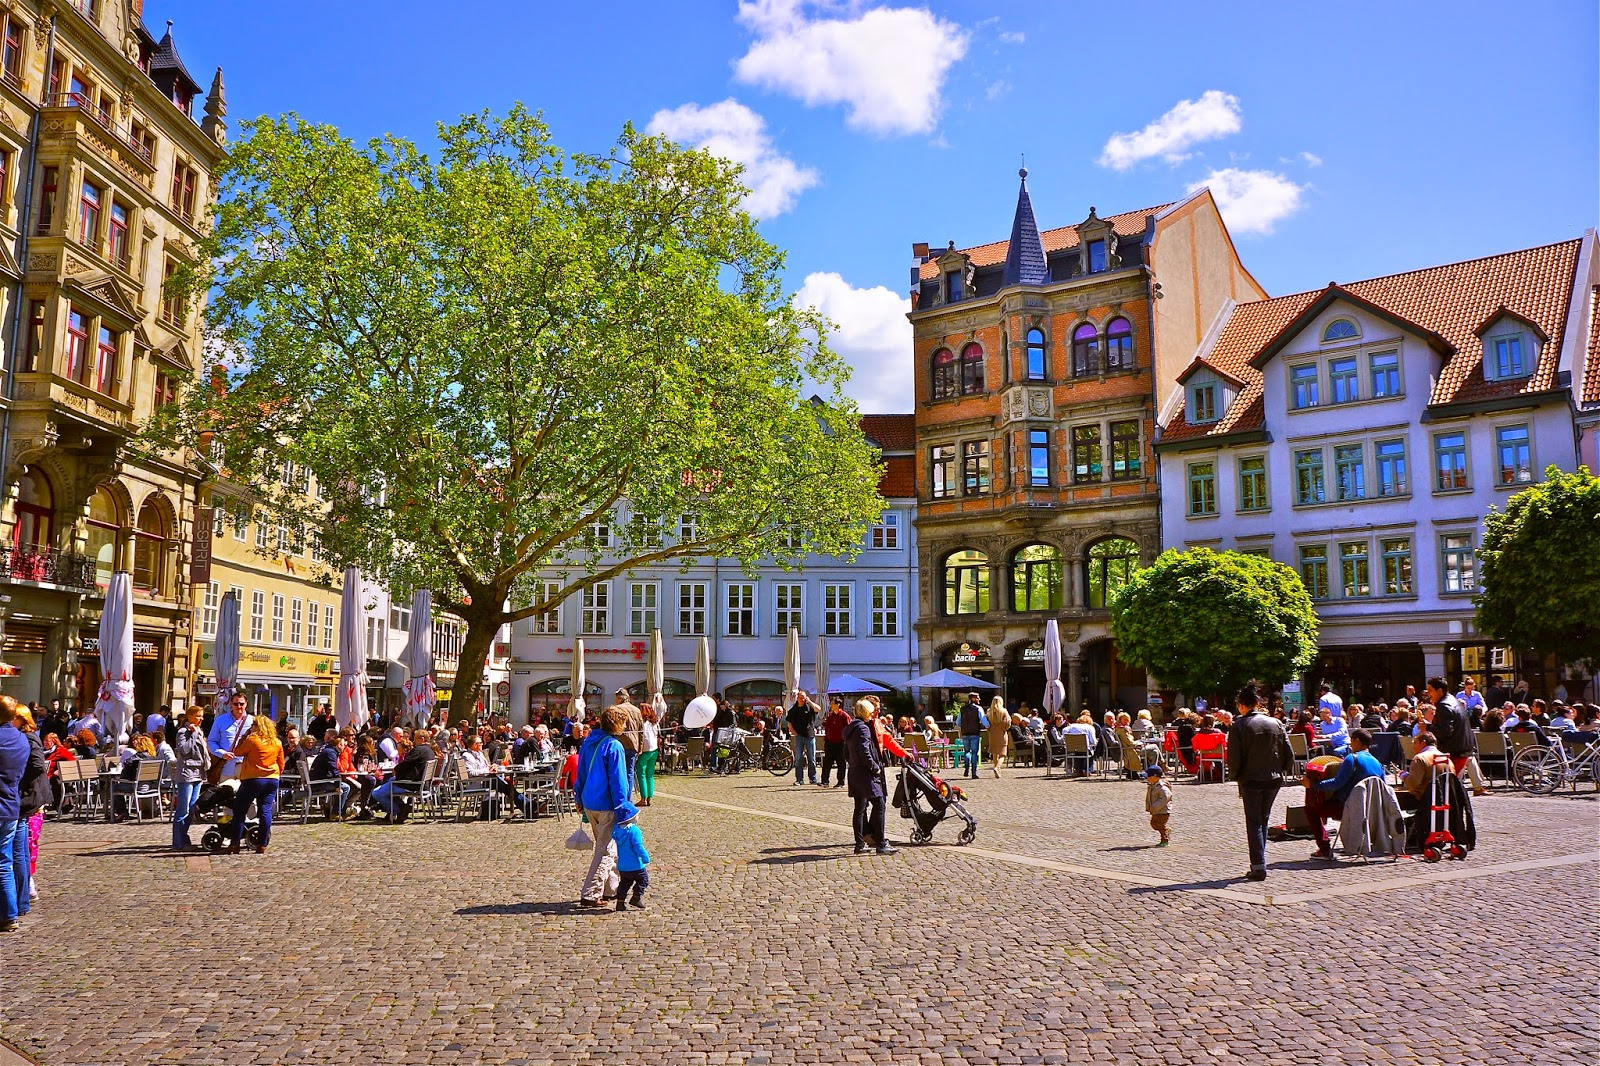 Picture of the Kohlmarkt in Braunschweig, Germany.